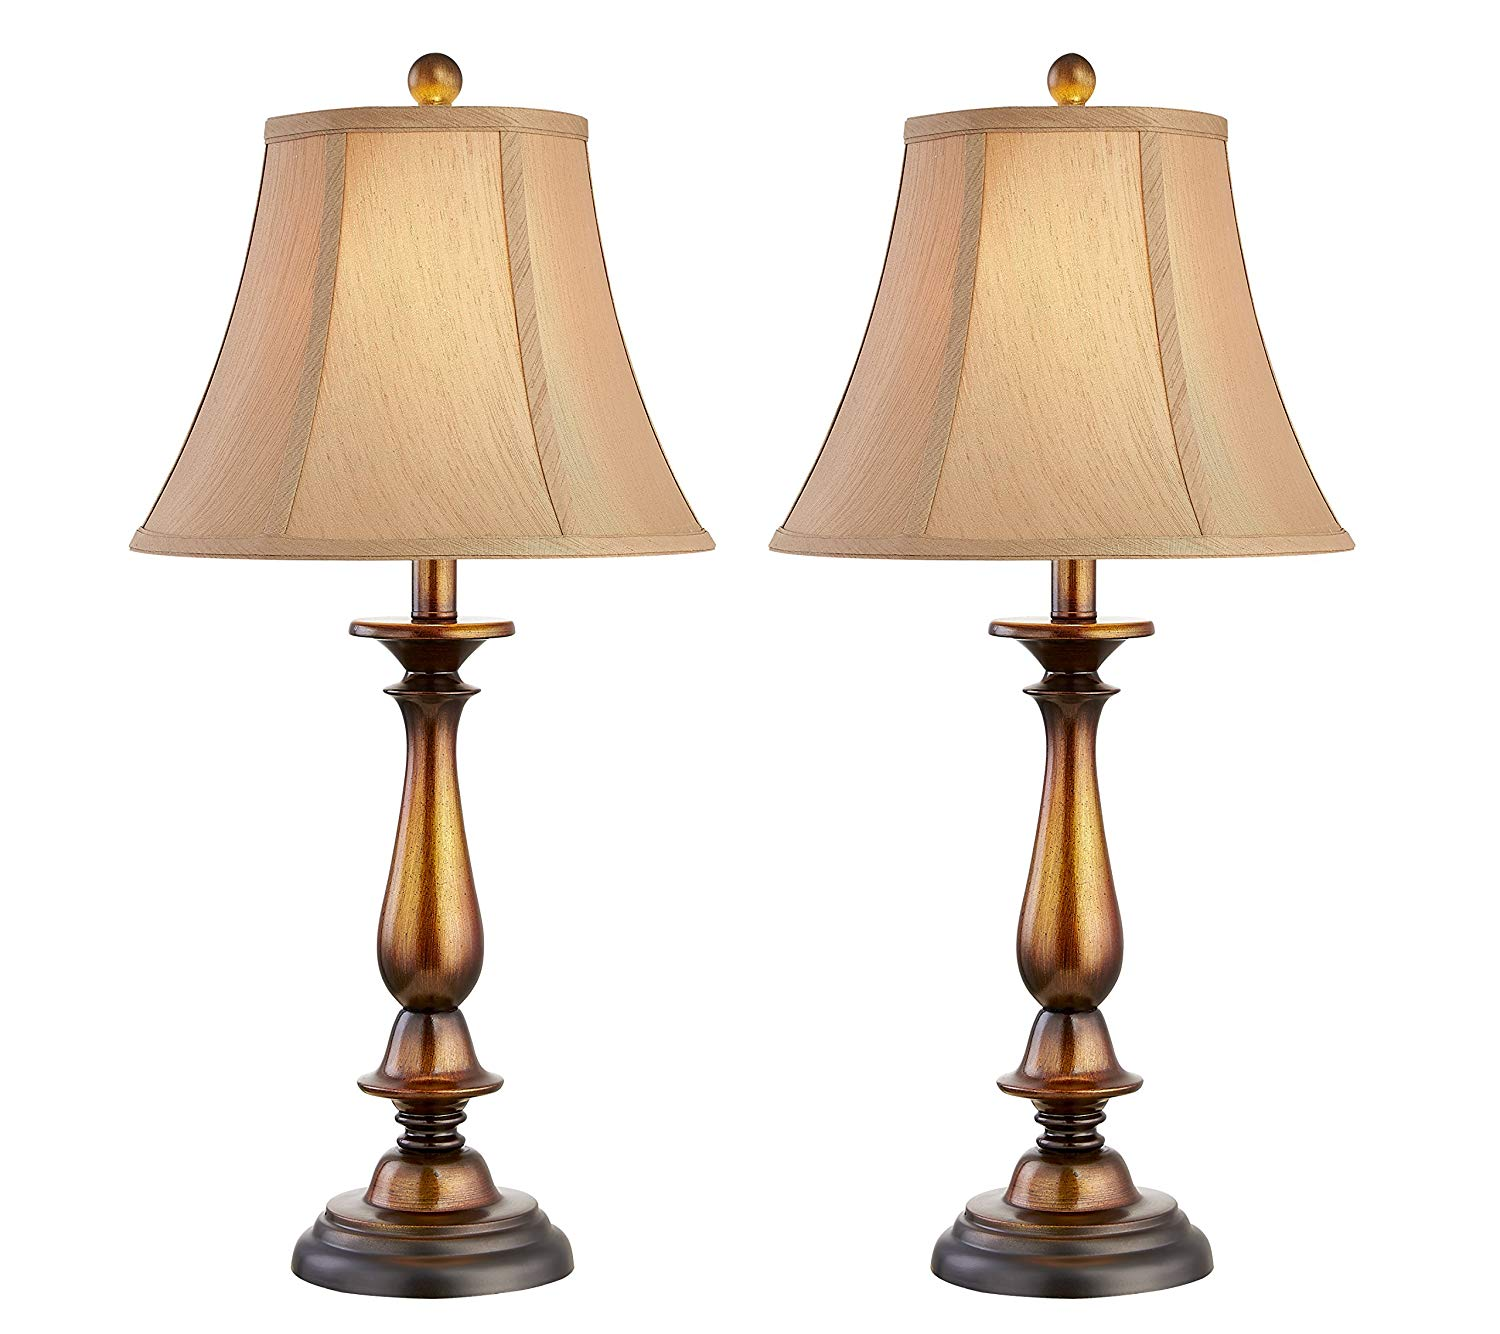 Table Lamp 27 Inches Height, dili home Desk Lamp Set of 2– Traditional Elegant Plastic Base with Hand Stitched Cotton Lampshade, Ambient Lighting Perfect for Living Room, Bedside Nightstand Light.